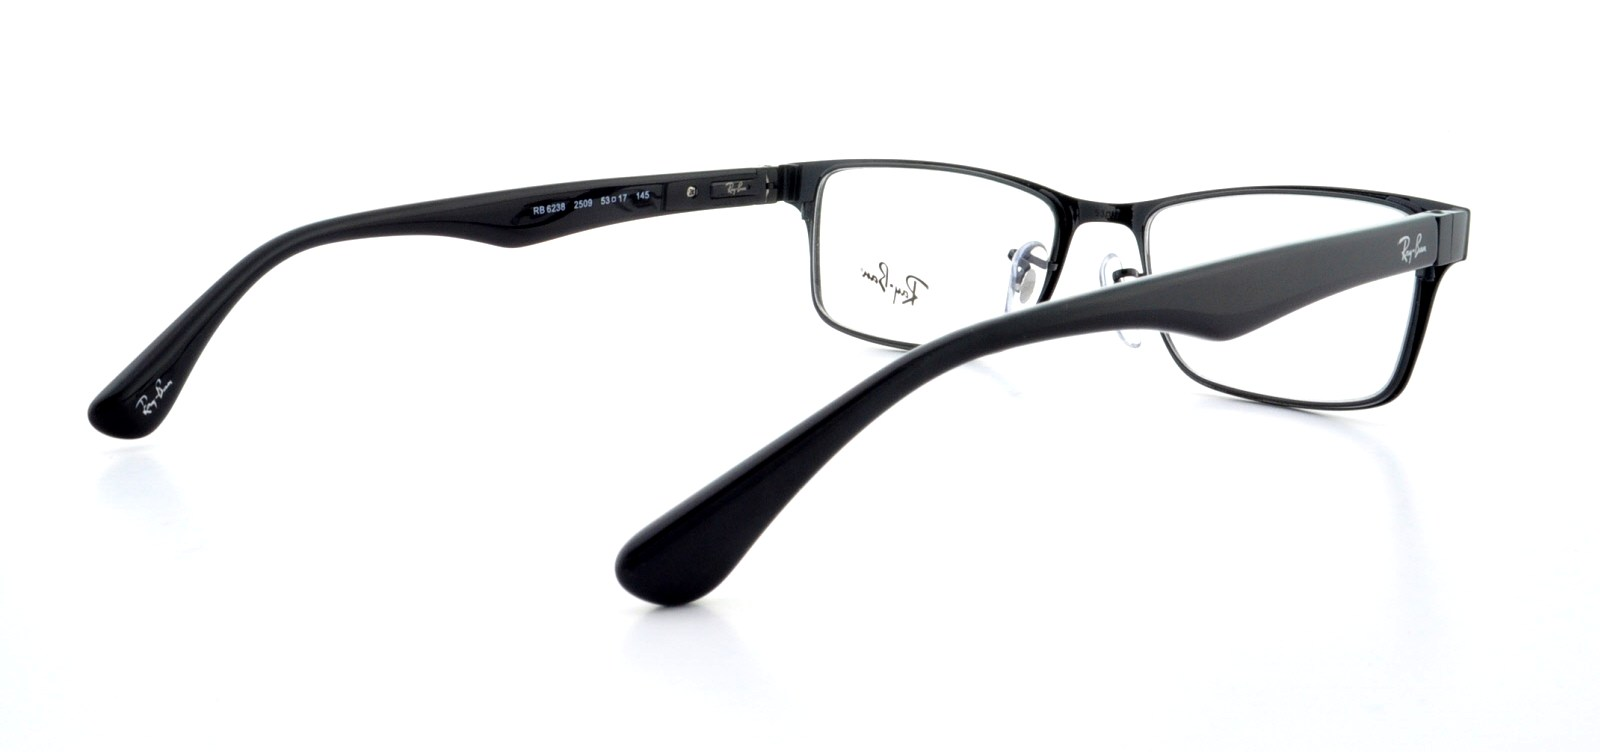 fba2d6dd4e ... sale picture of ray ban eyeglasses rx6238 52bb3 abca7 ...